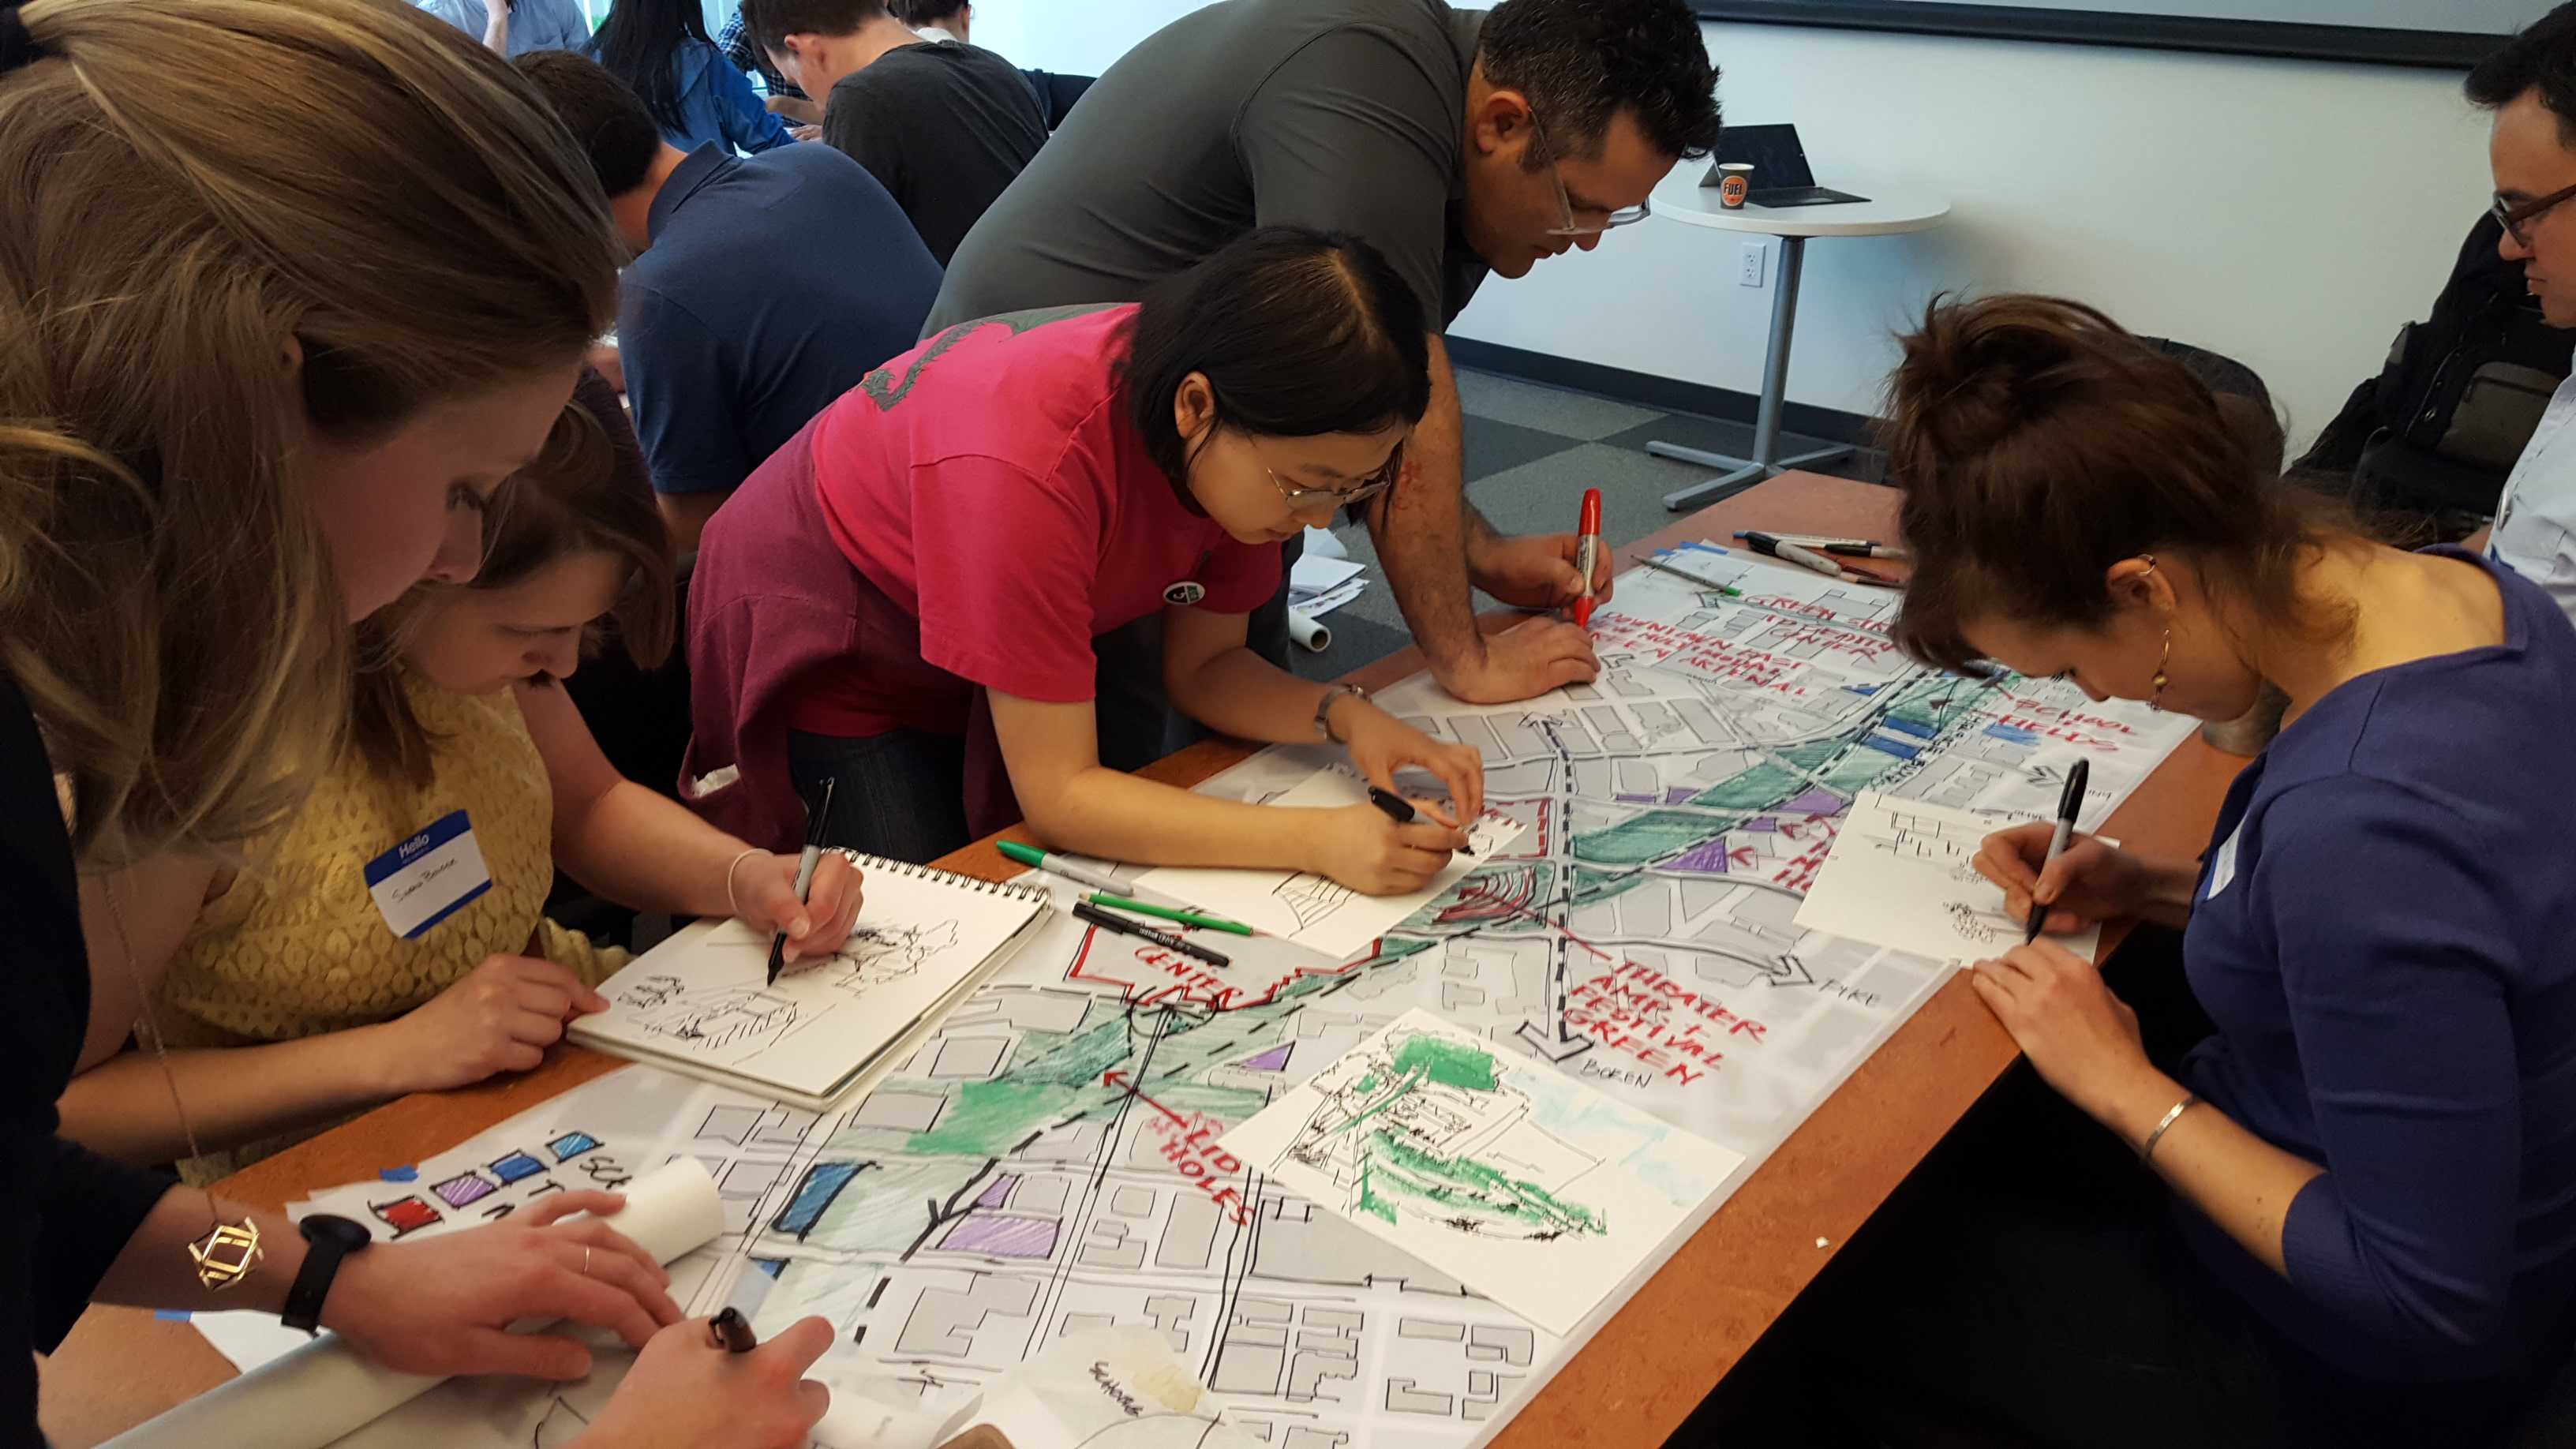 Lid i 5 charrette draws big crowd and big ideas the - Charrette dessin ...